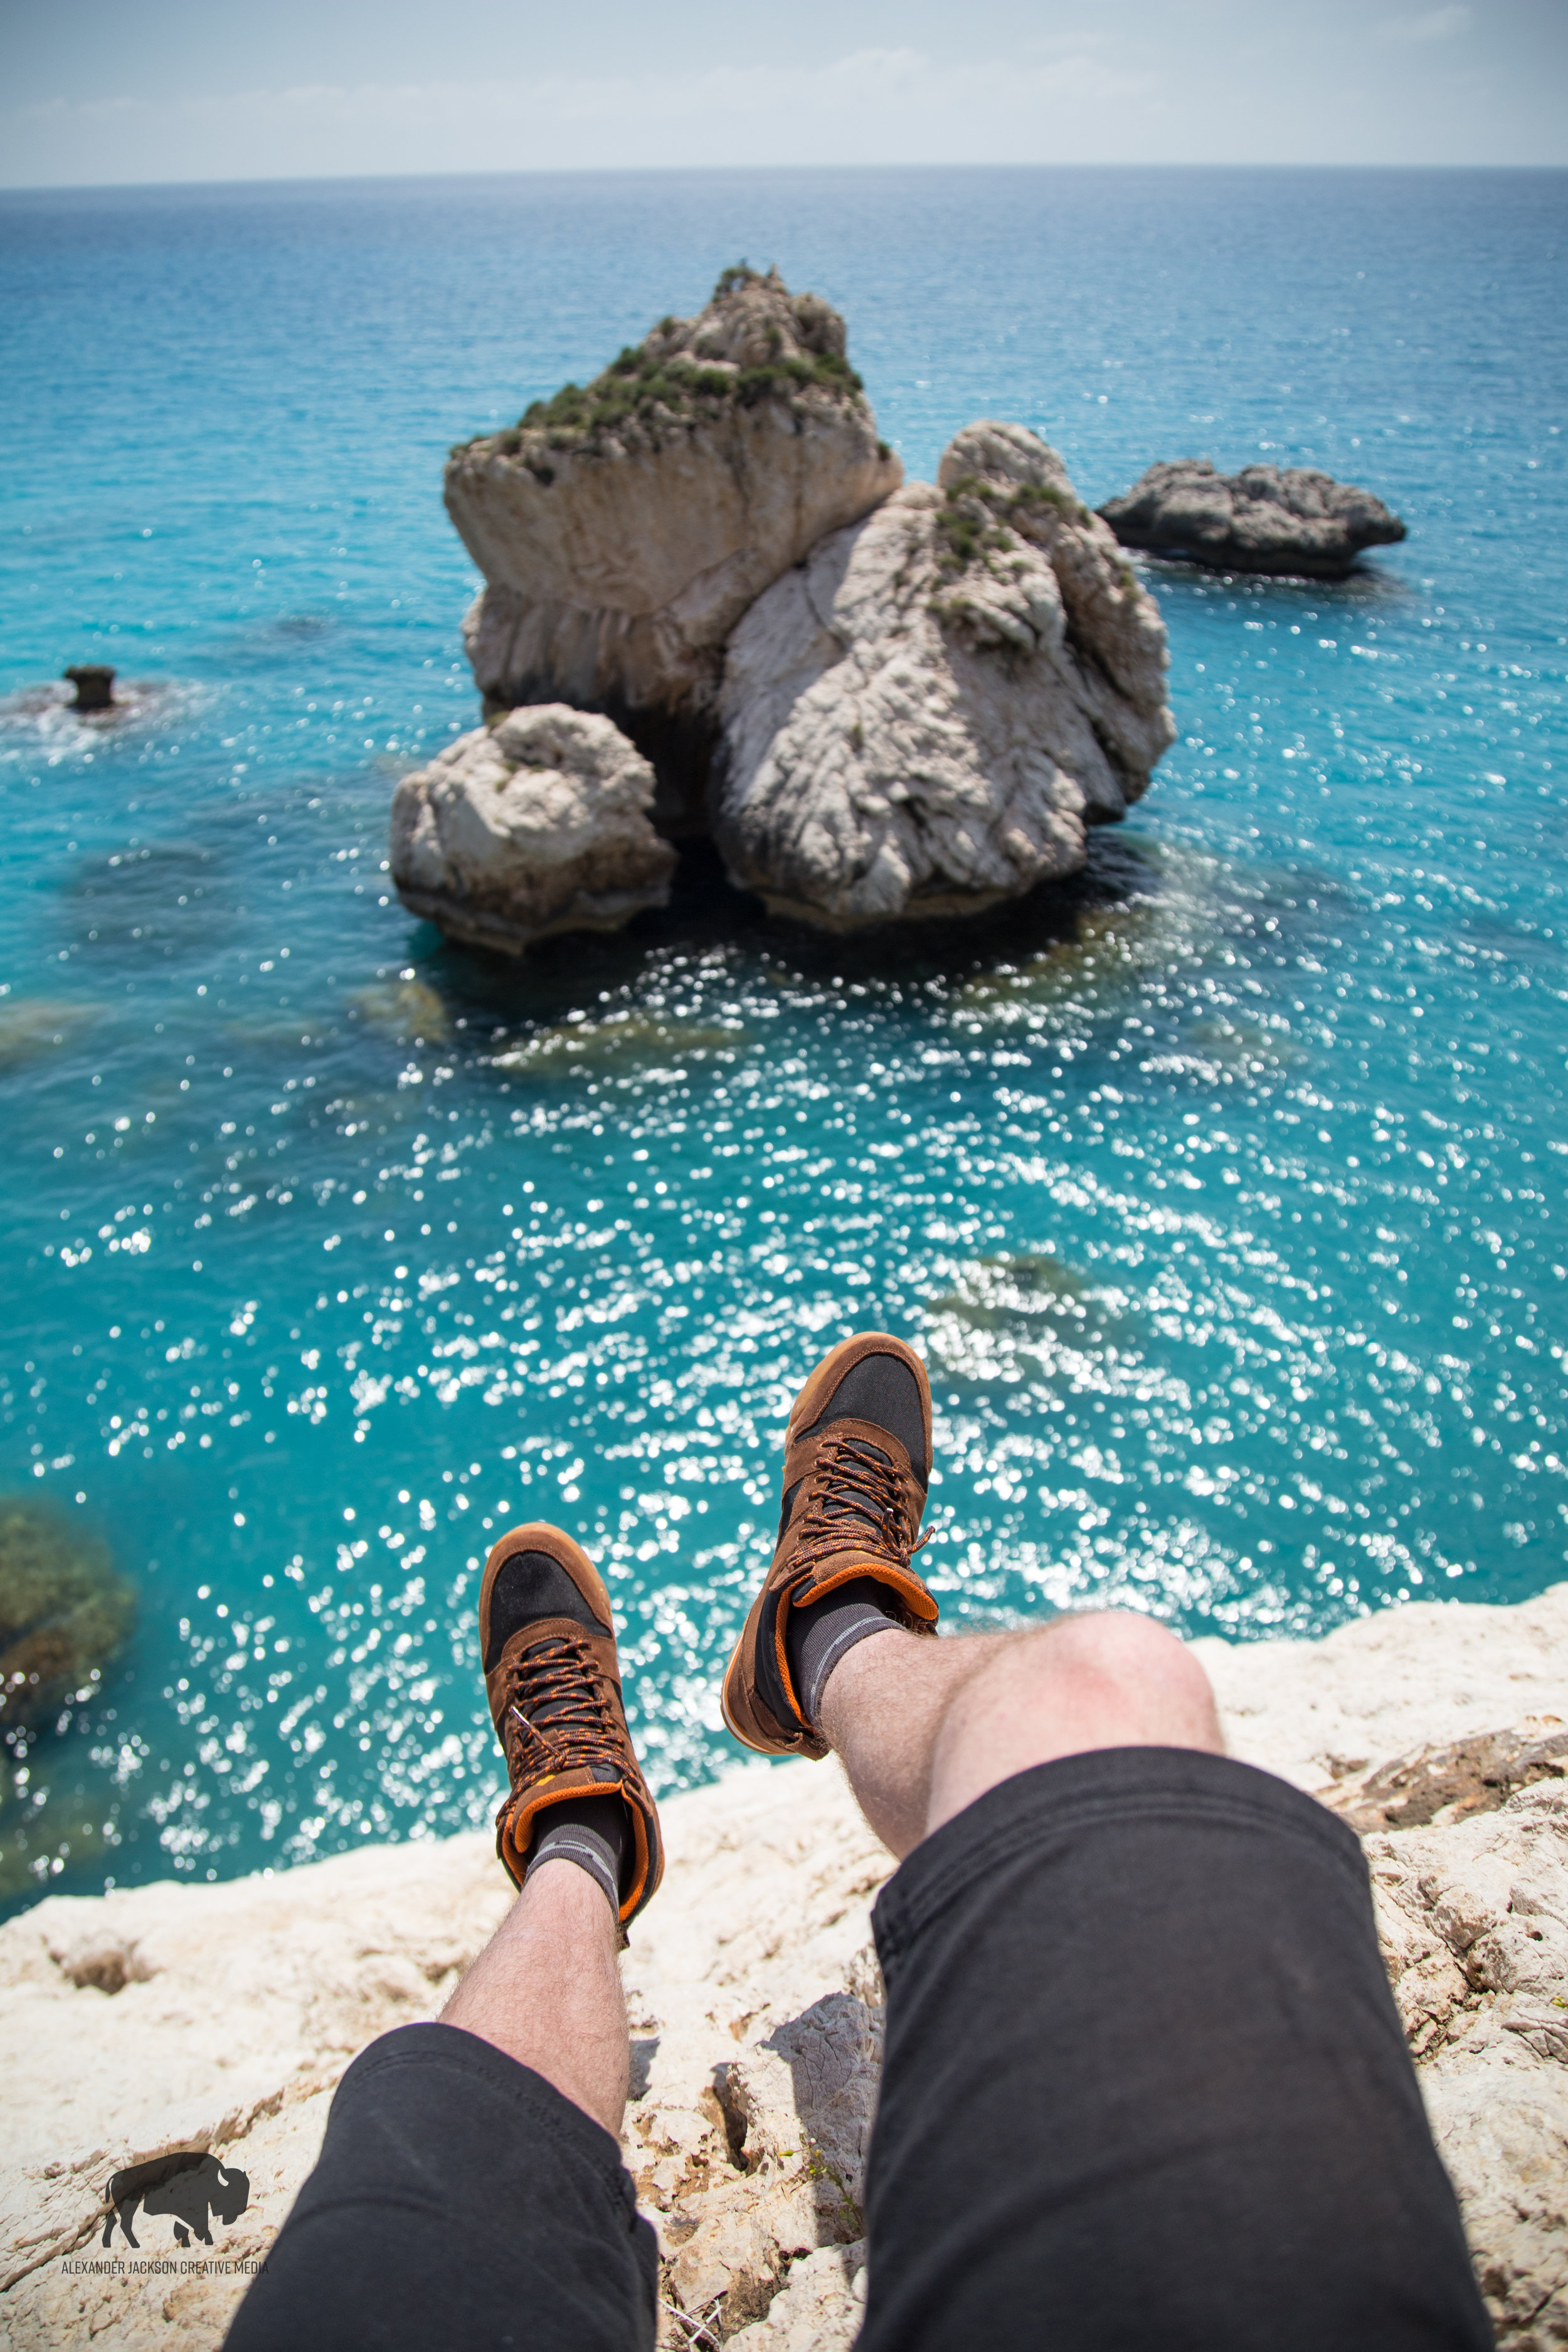 Mediterranean sea anyone? Loving my new kicks also, check out Ridgemont Outfitters, COMFY SHOES!